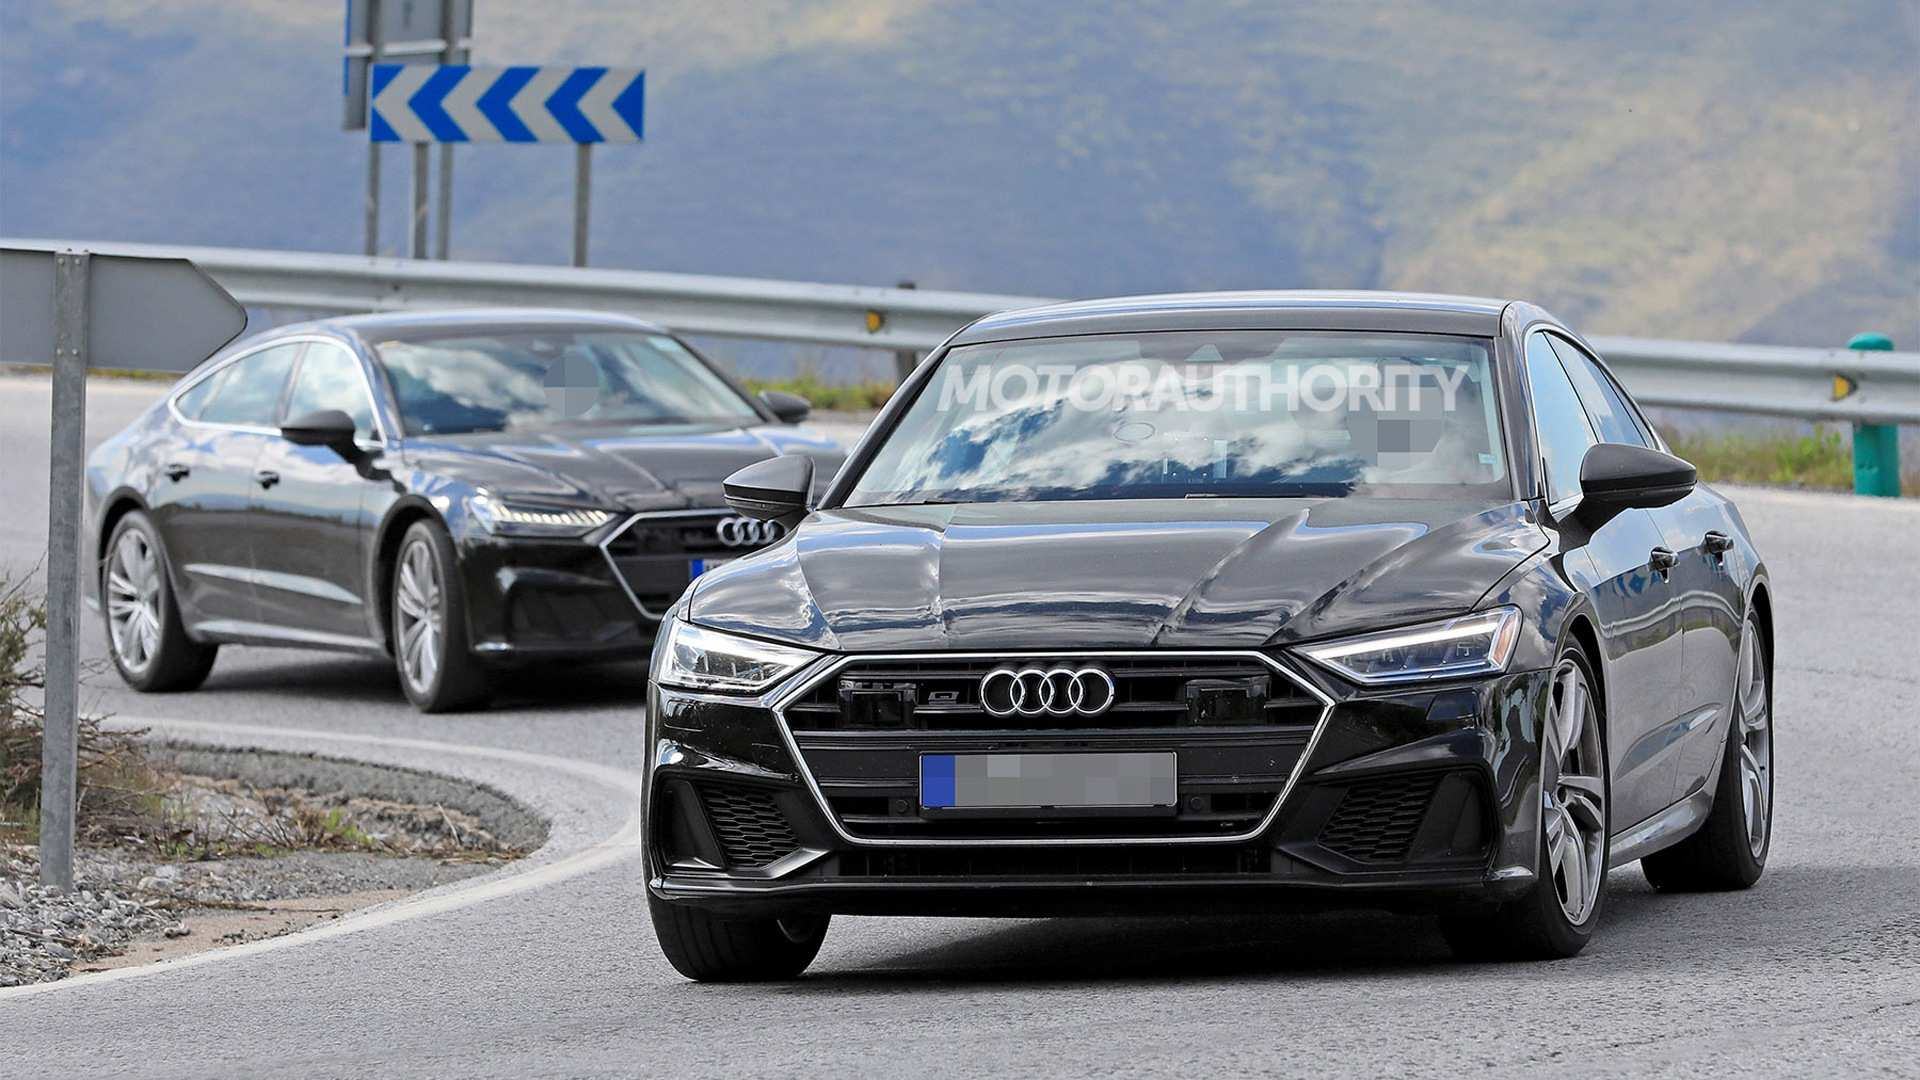 90 A 2020 Audi S7 Release Date Usa Overview